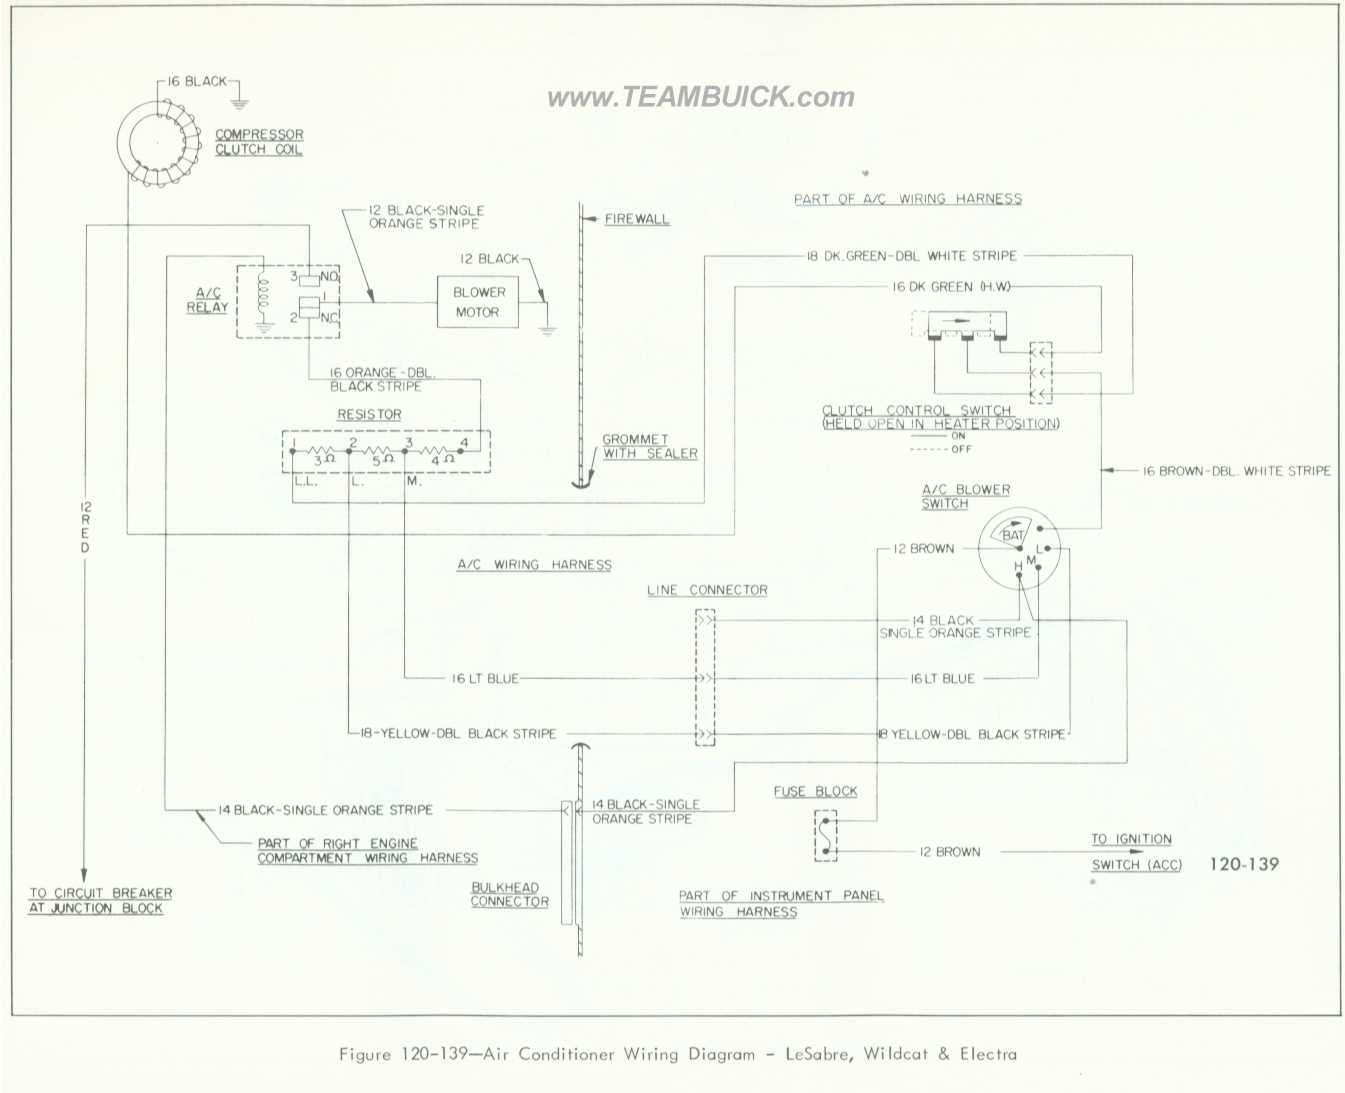 buick lesabre wildcat electra air conditioner wiring diagram 1966 buick lesabre wildcat electra air conditioner wiring diagram